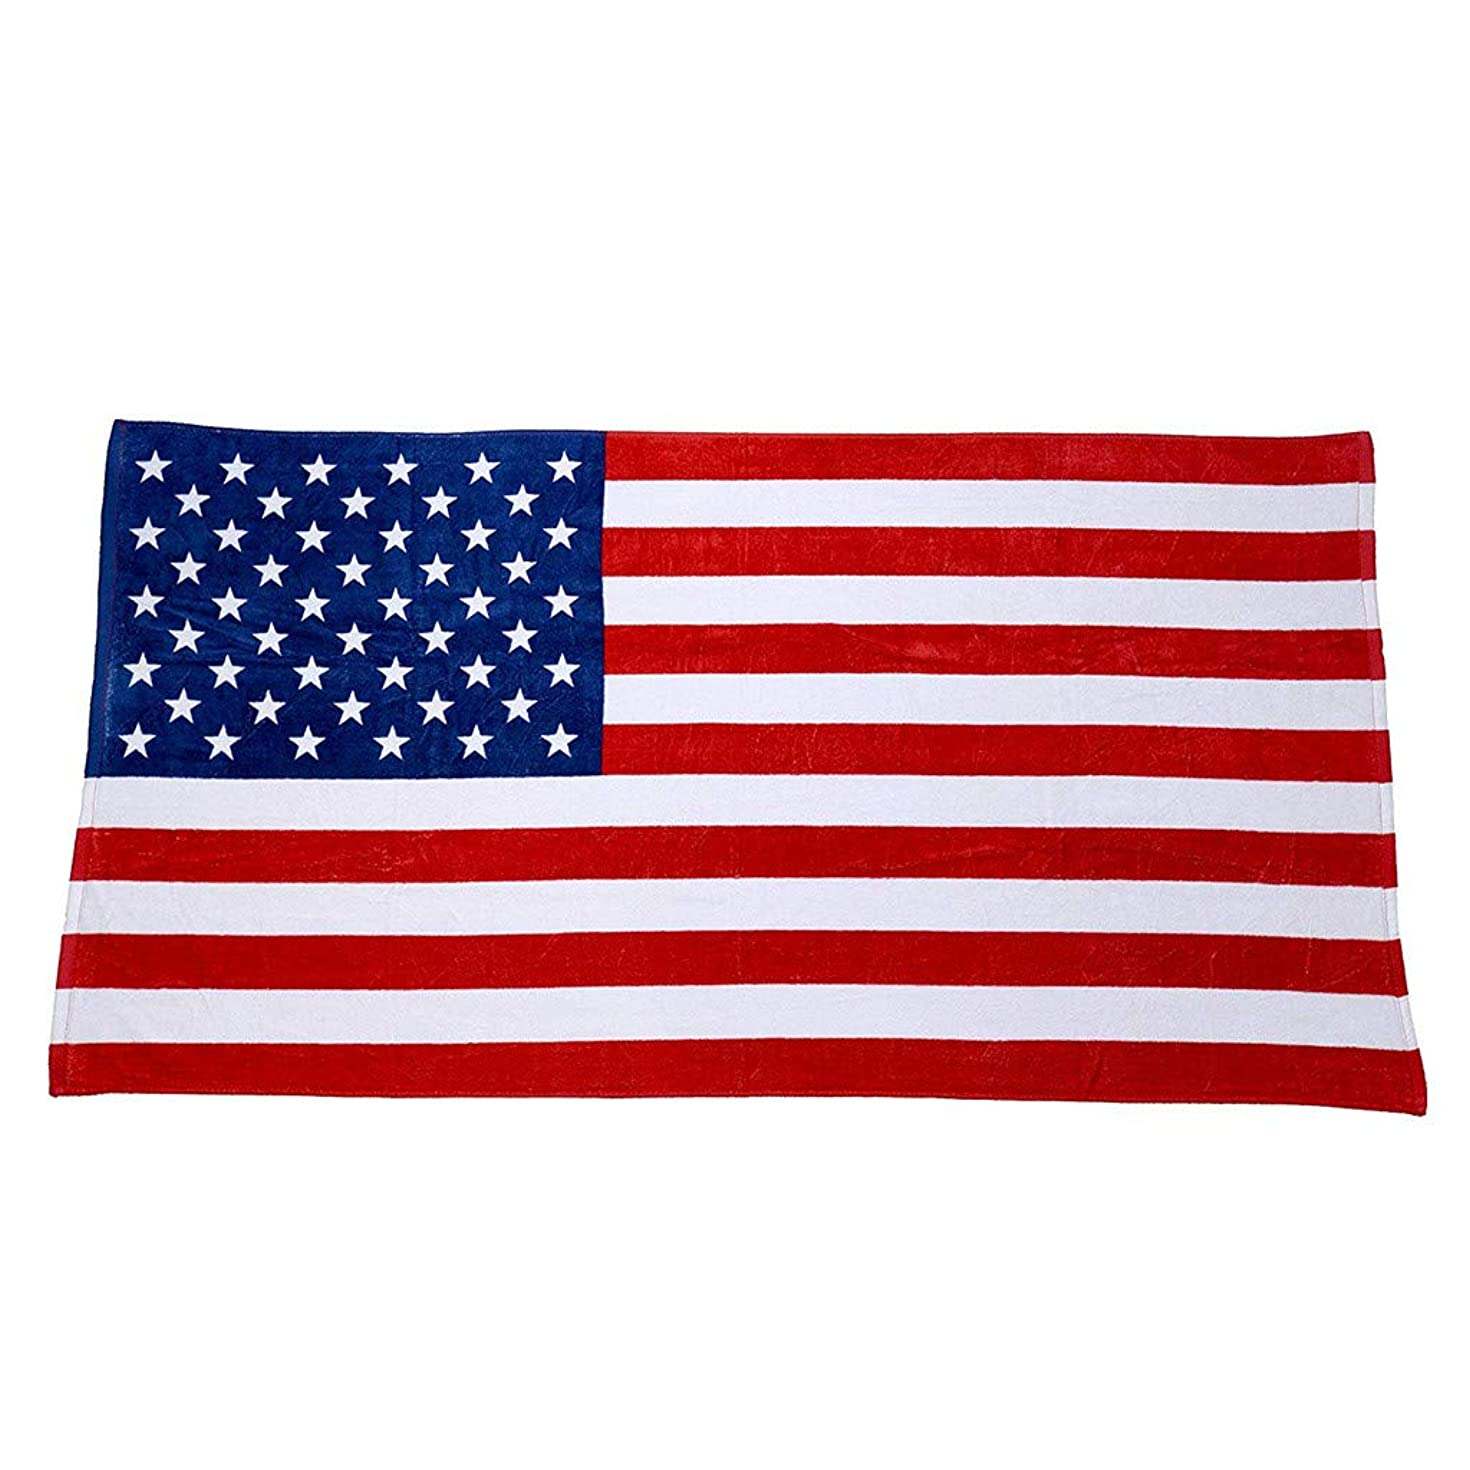 ??Ywoow?? Beach Towel, Independence Day American Flag Beach Towel 100% Cotton Plush